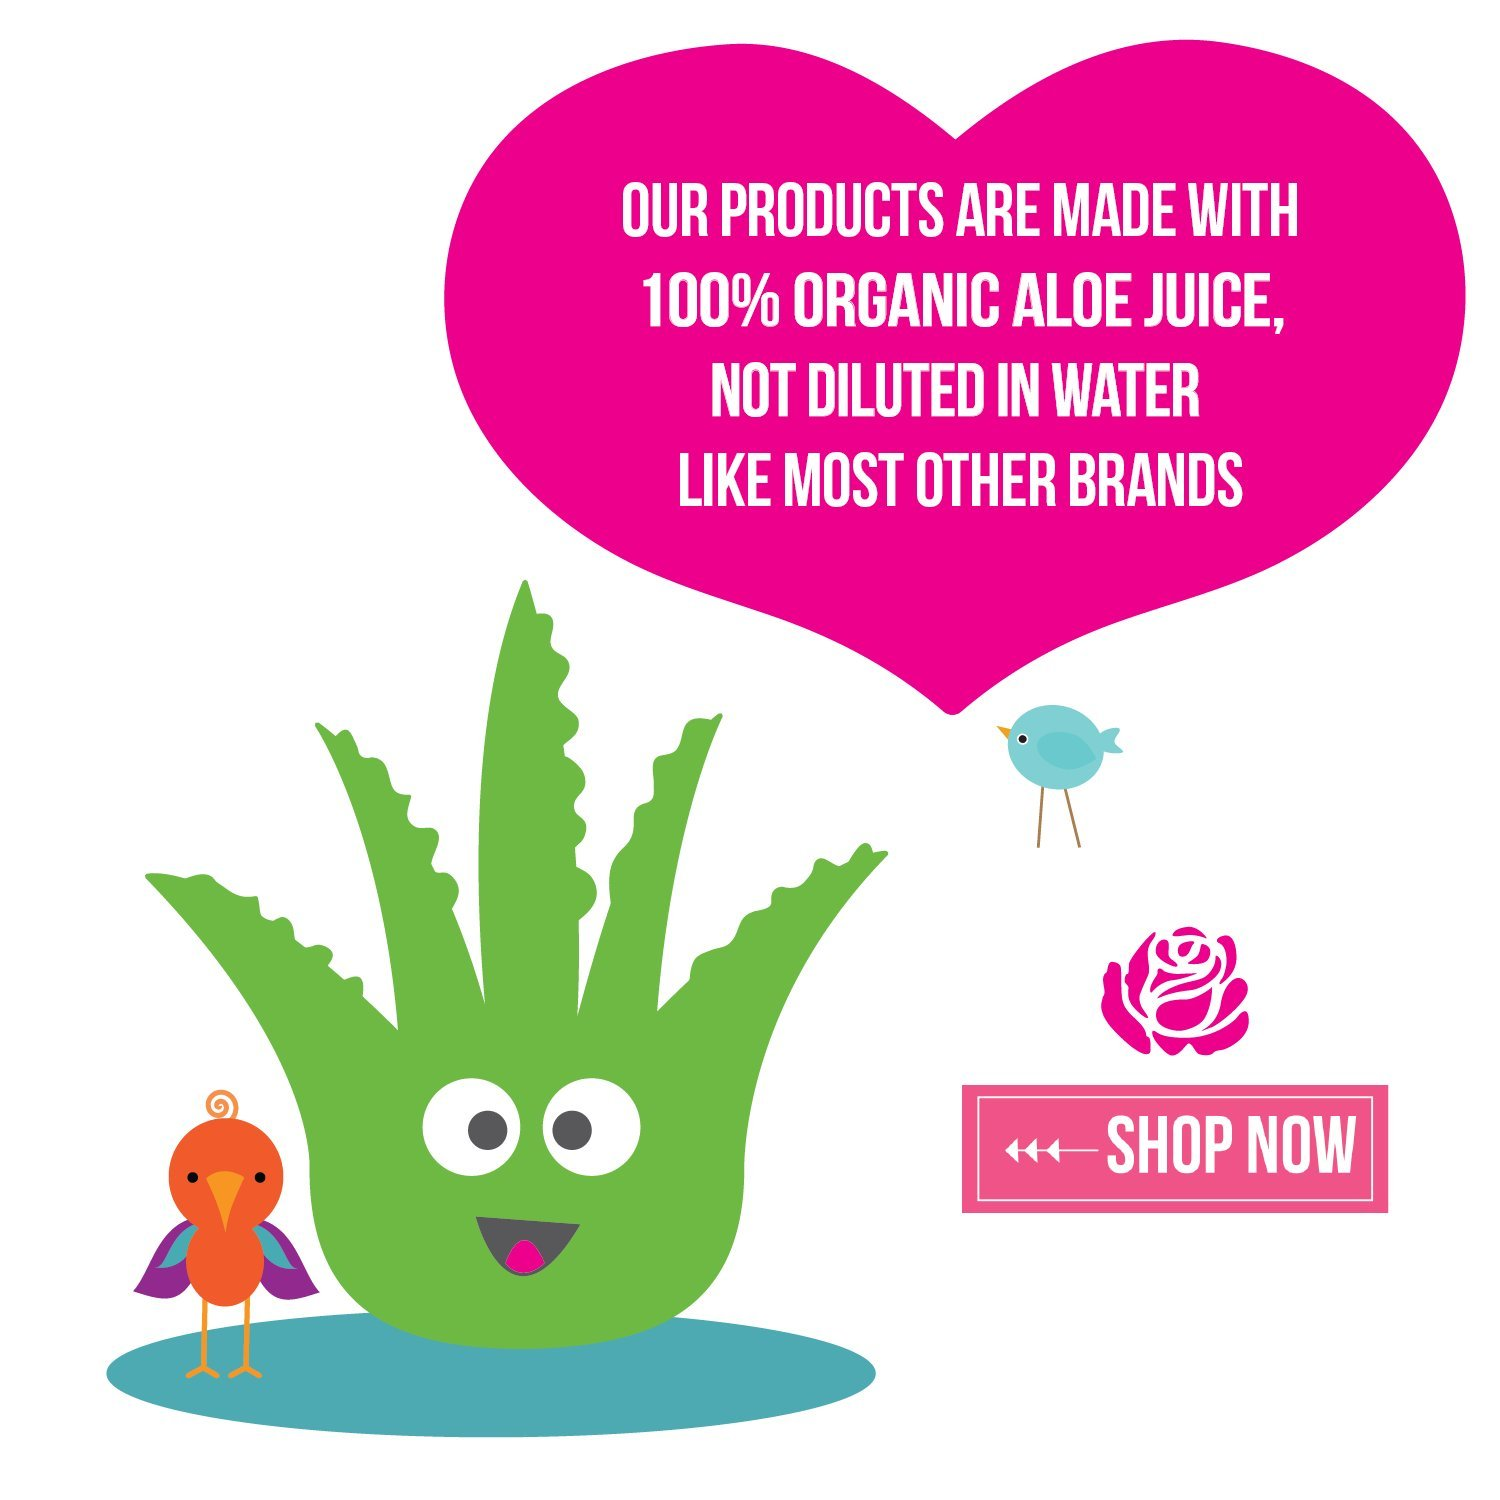 Hair Gel for Kids   Light Hold   Chemical Free   Made with Organic Aloe Vera and Vitamins   Safe on Babies, Toddlers, Men and Women   Always Paraben, Sulfate & Fragrance Free   Made in USA (1 Unit) by Little Roseberry (Image #7)